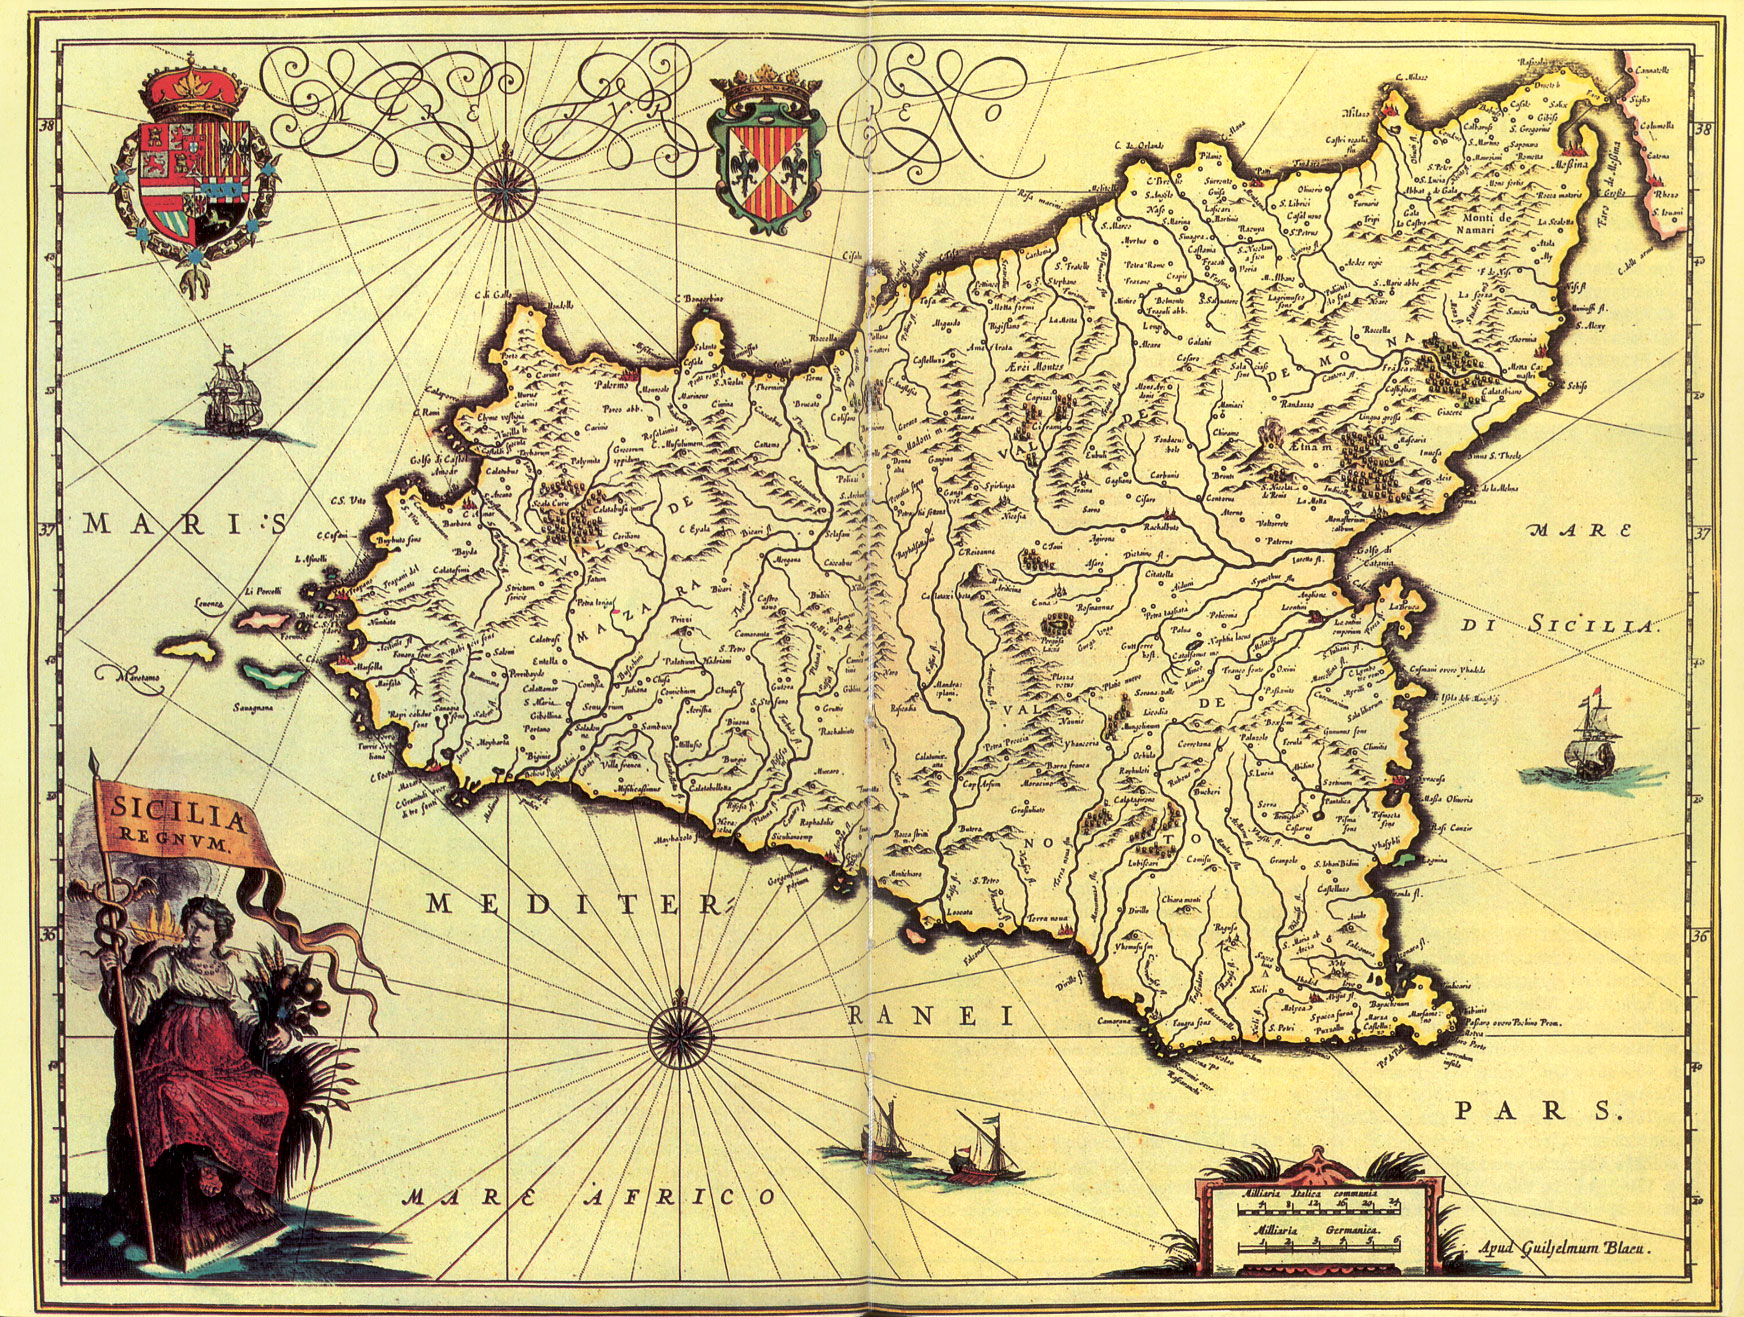 external image Historical-map-of-Sicily-bjs-1.jpg